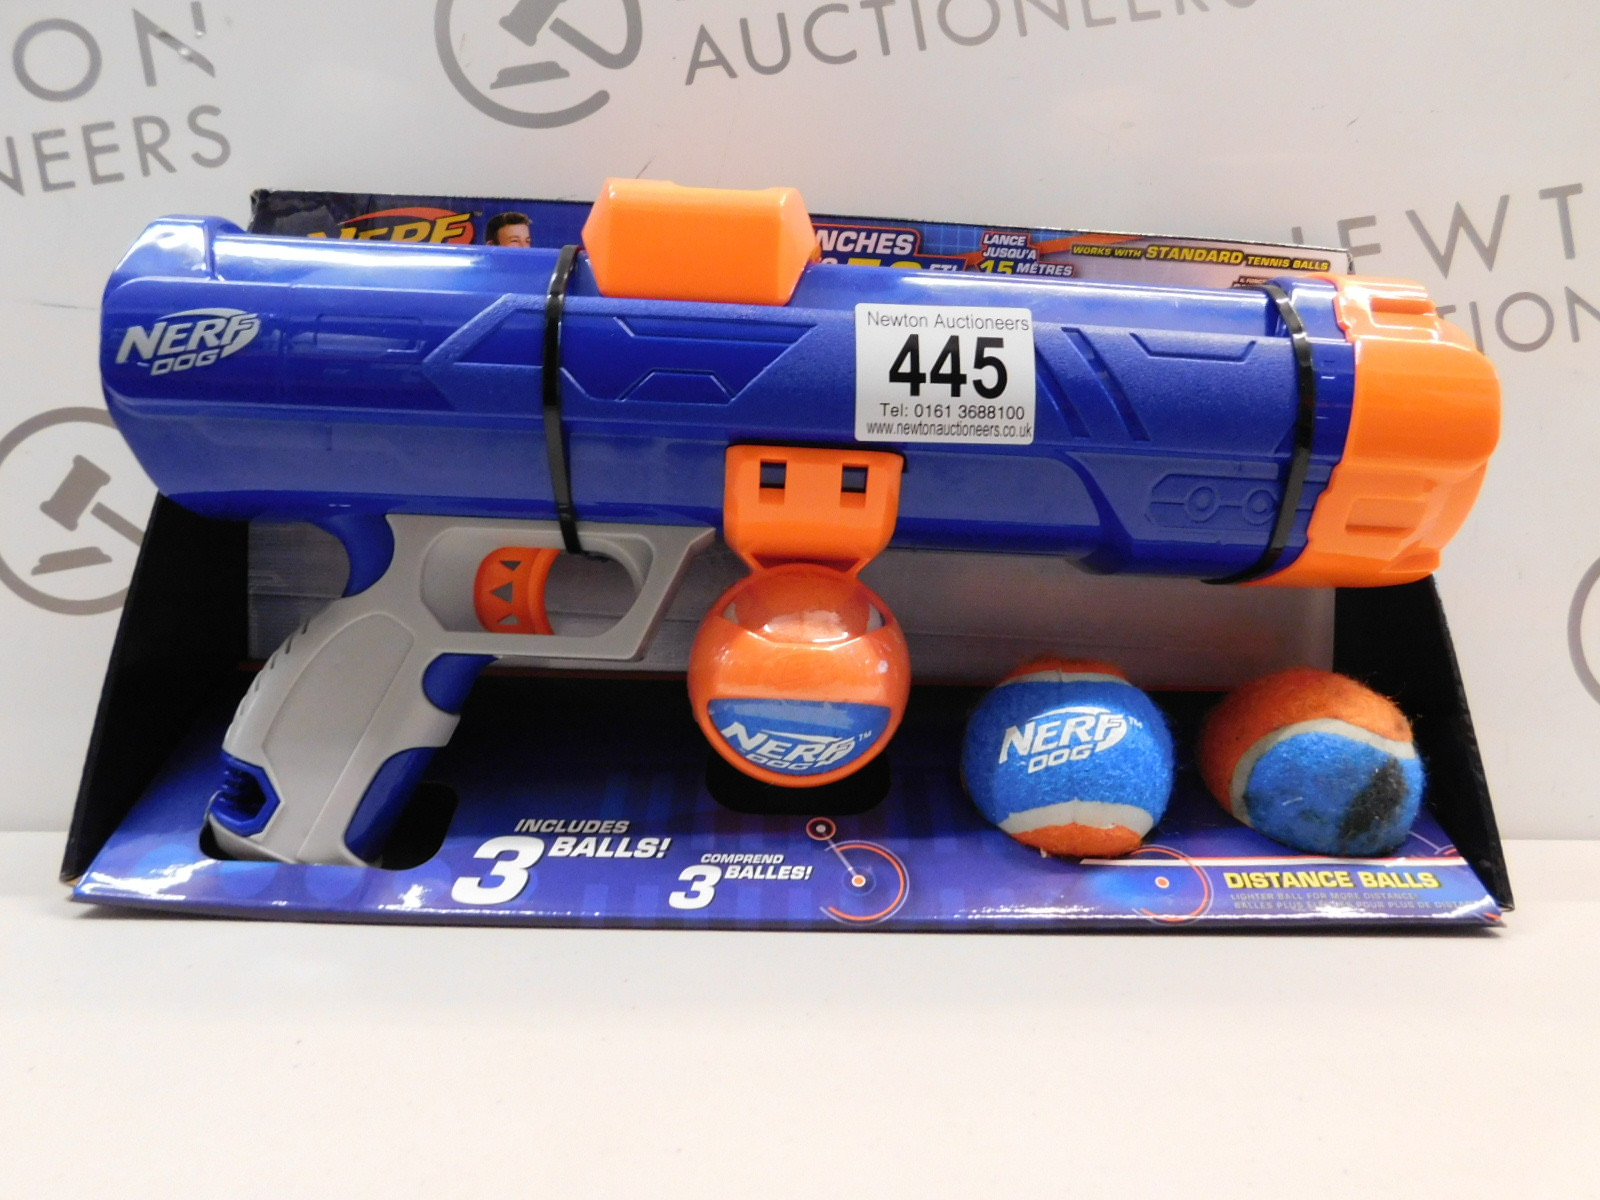 Lot 445 - 1 PACK OF NERF DOG TENNIS BALL BLASTER RRP £24.99